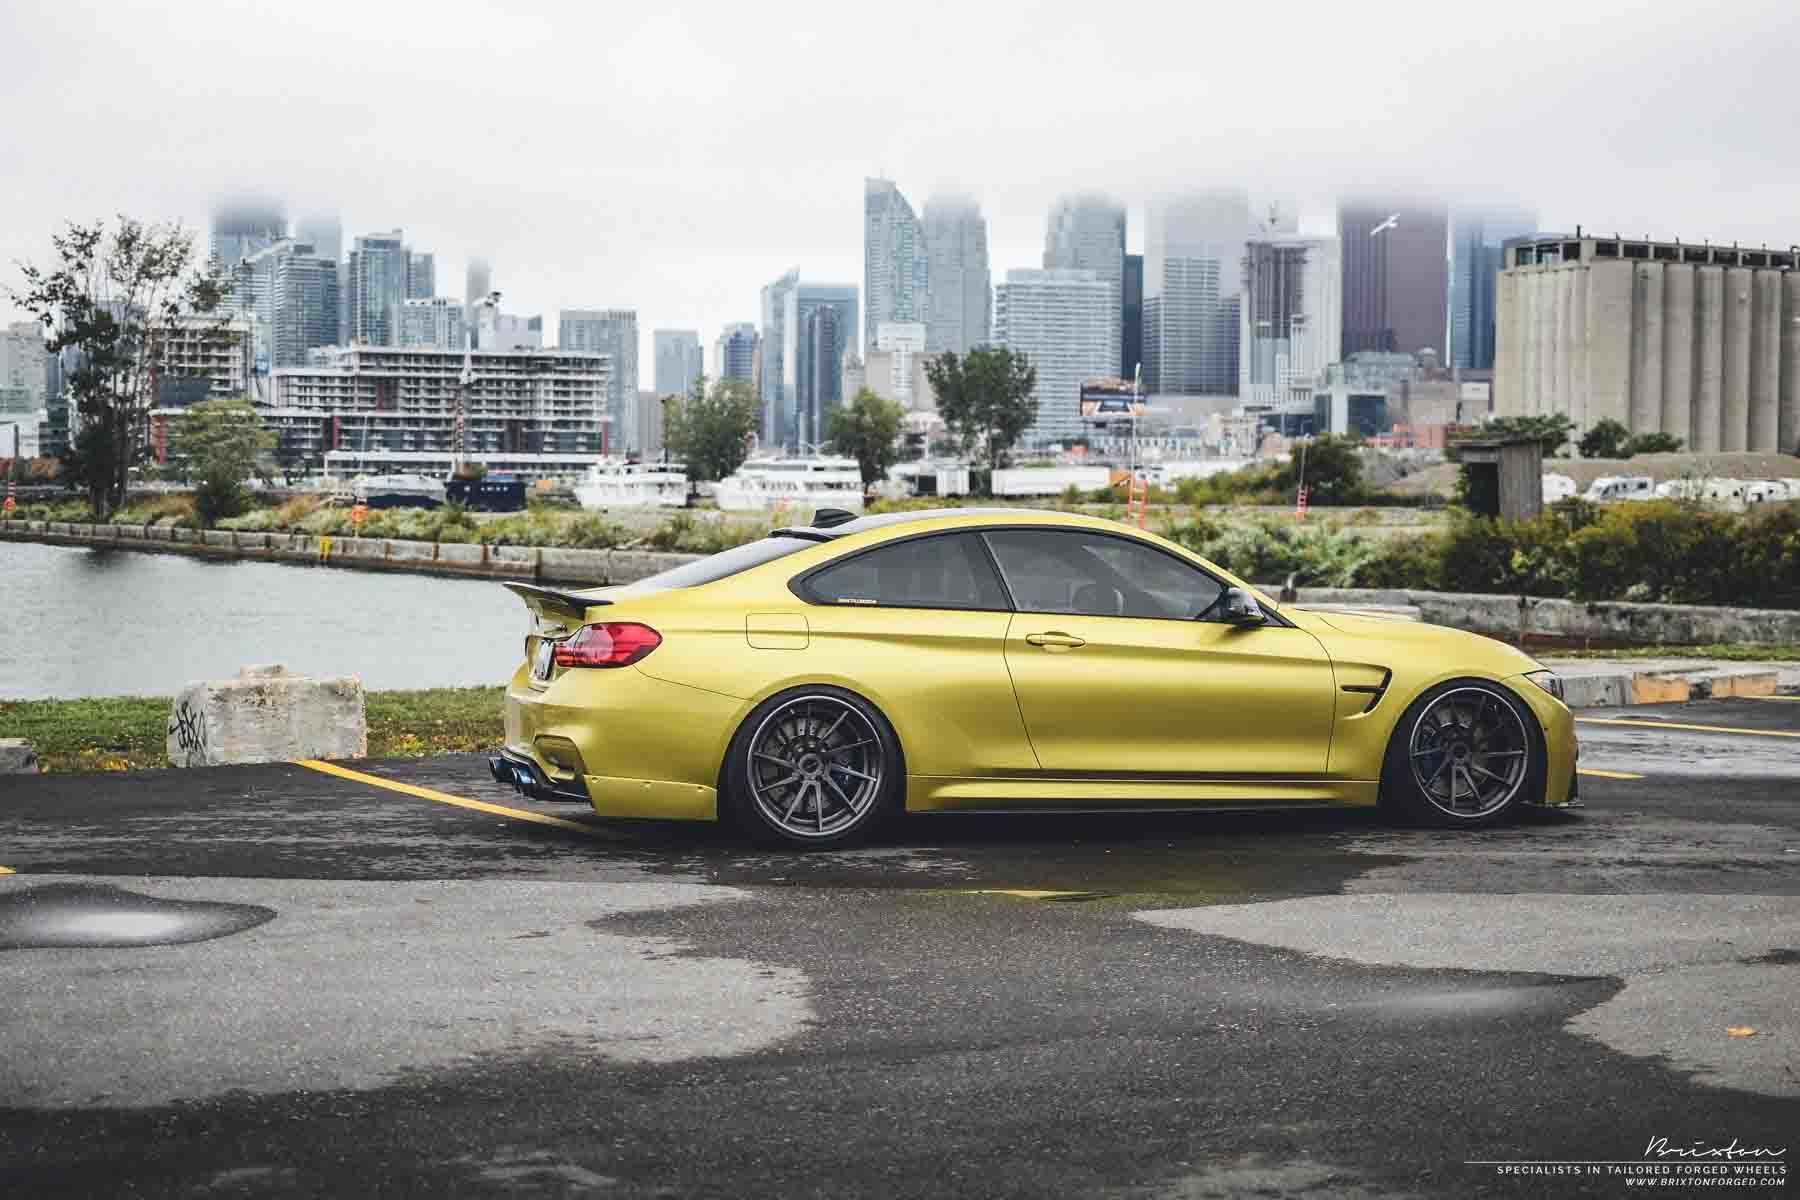 images-products-1-2773-232975061-brixton-forged-austin-yellow-bmw-m4-f82-brixton-forged-r10d-targa-series-3-piece-concave-forged-.jpg